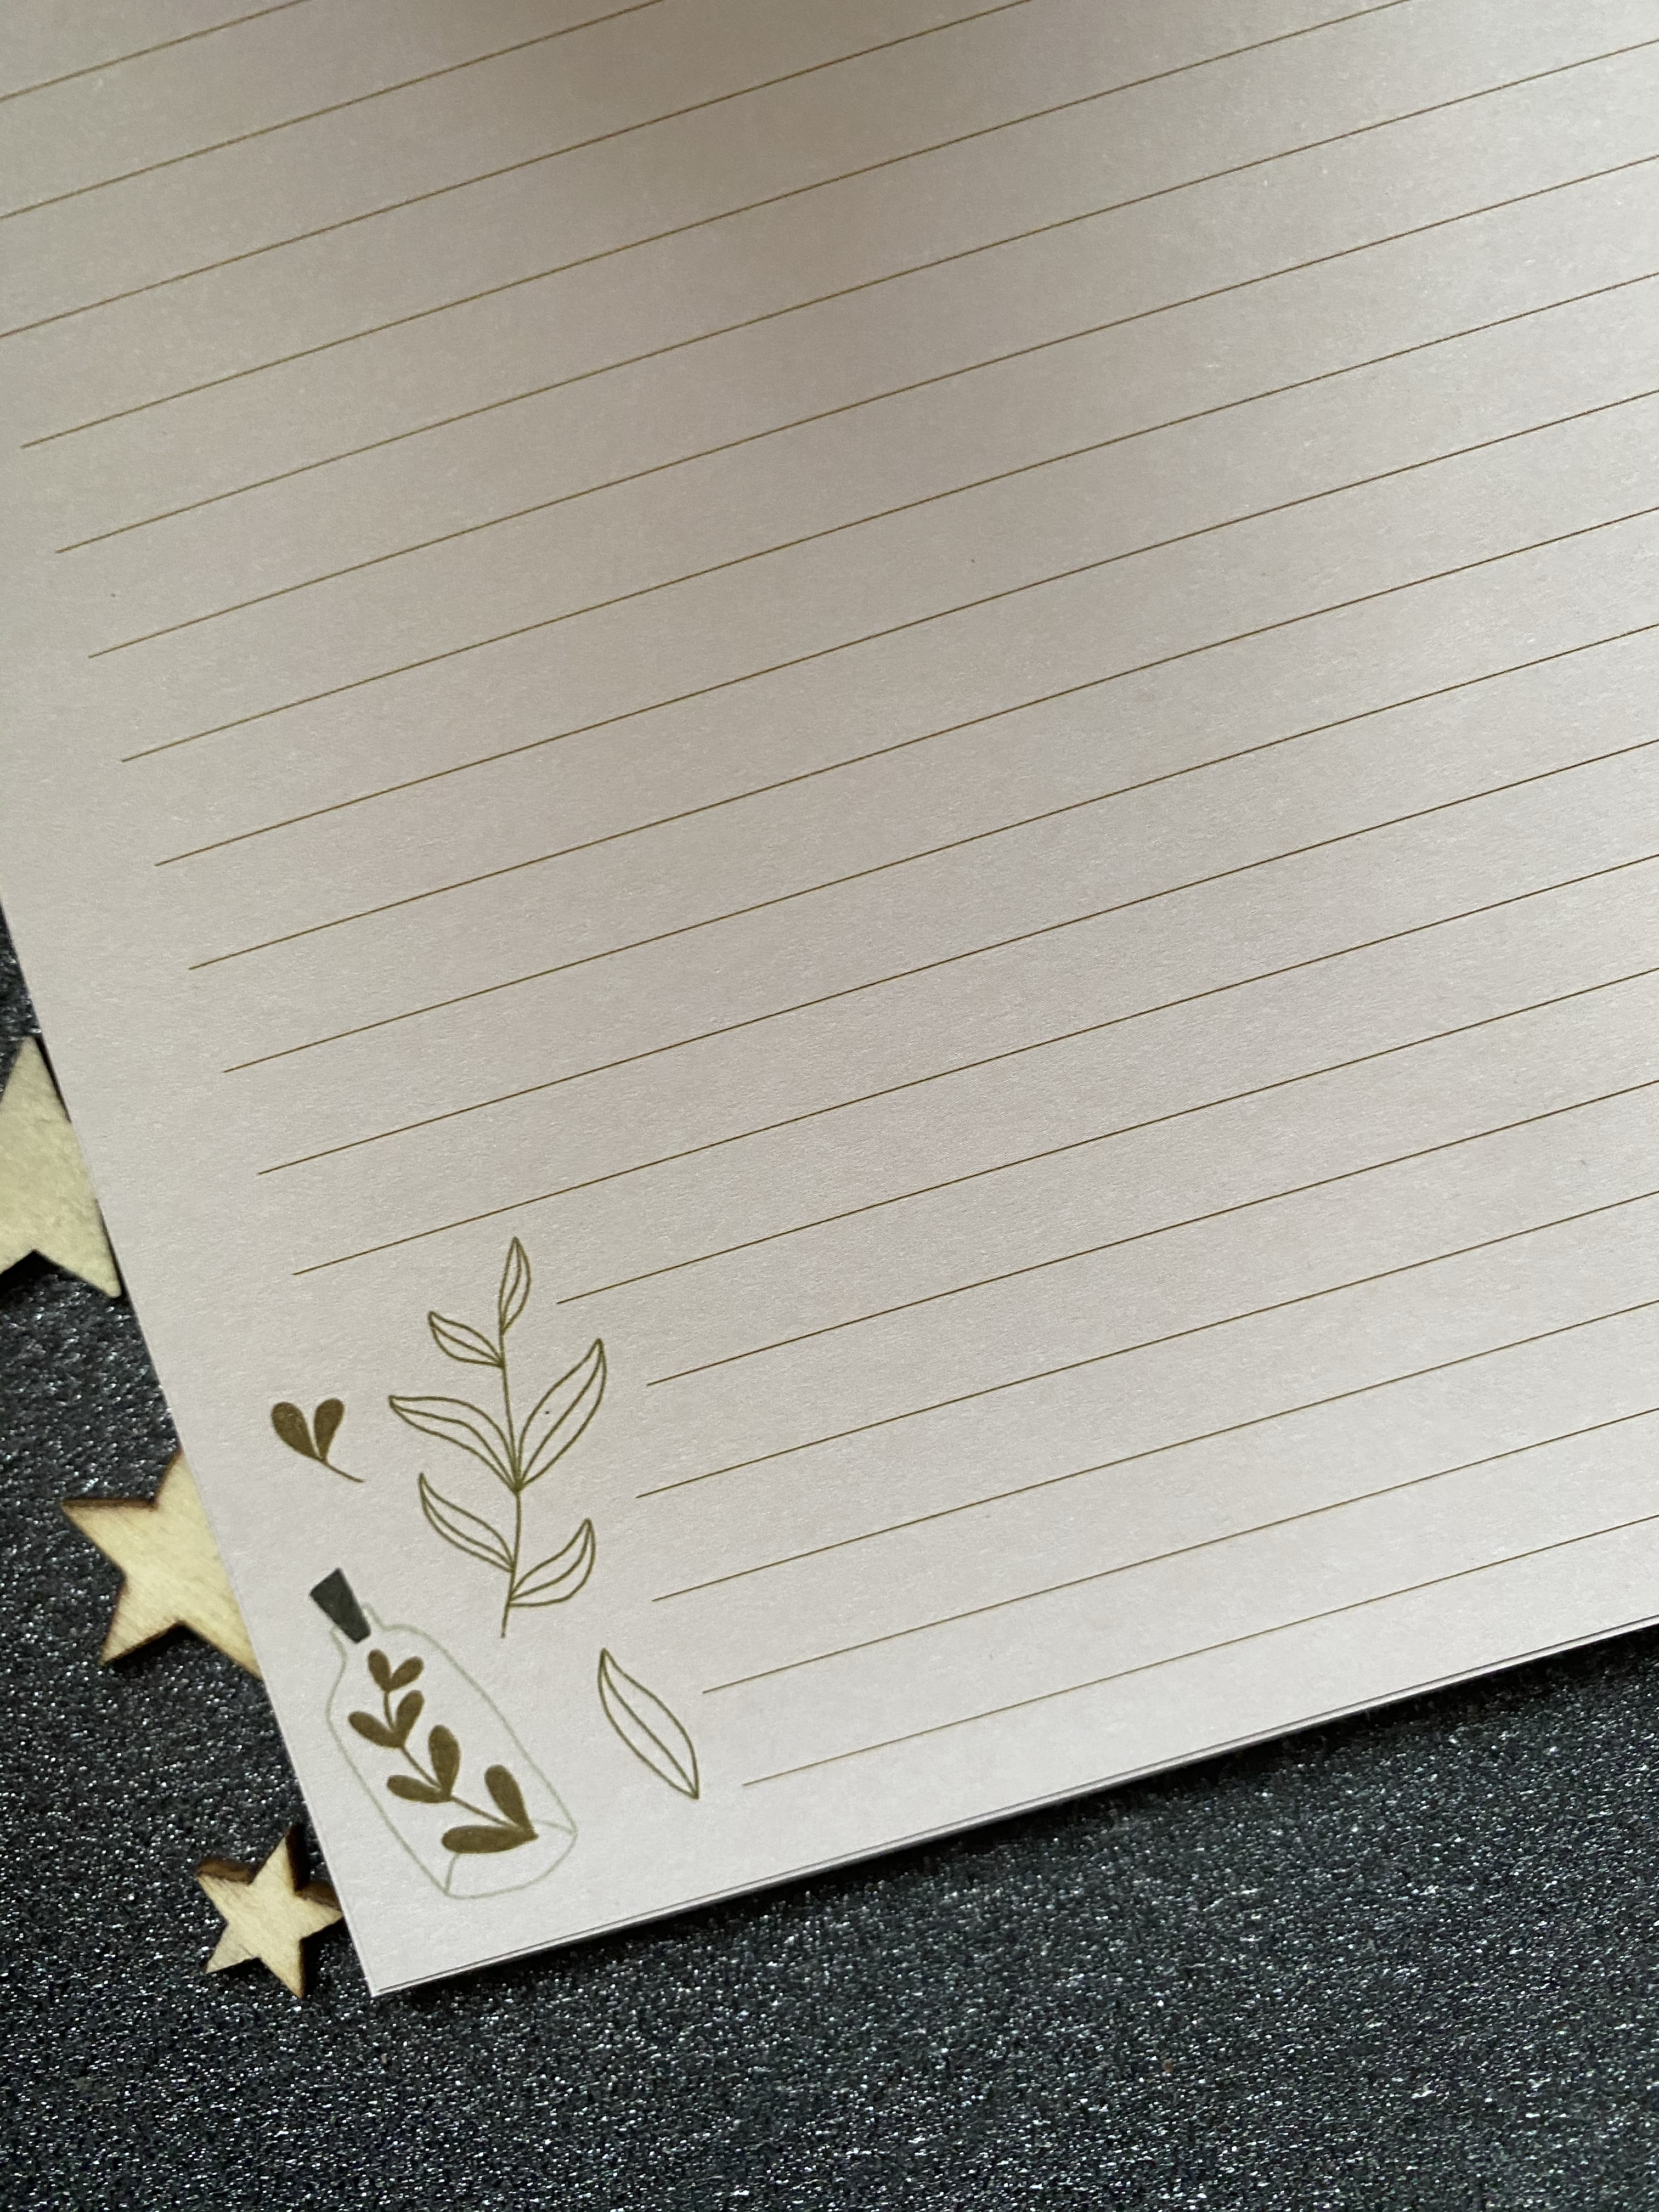 A lined pad with green lines with a design of leaves and leaves in a glass bottle on the right corner of each page.